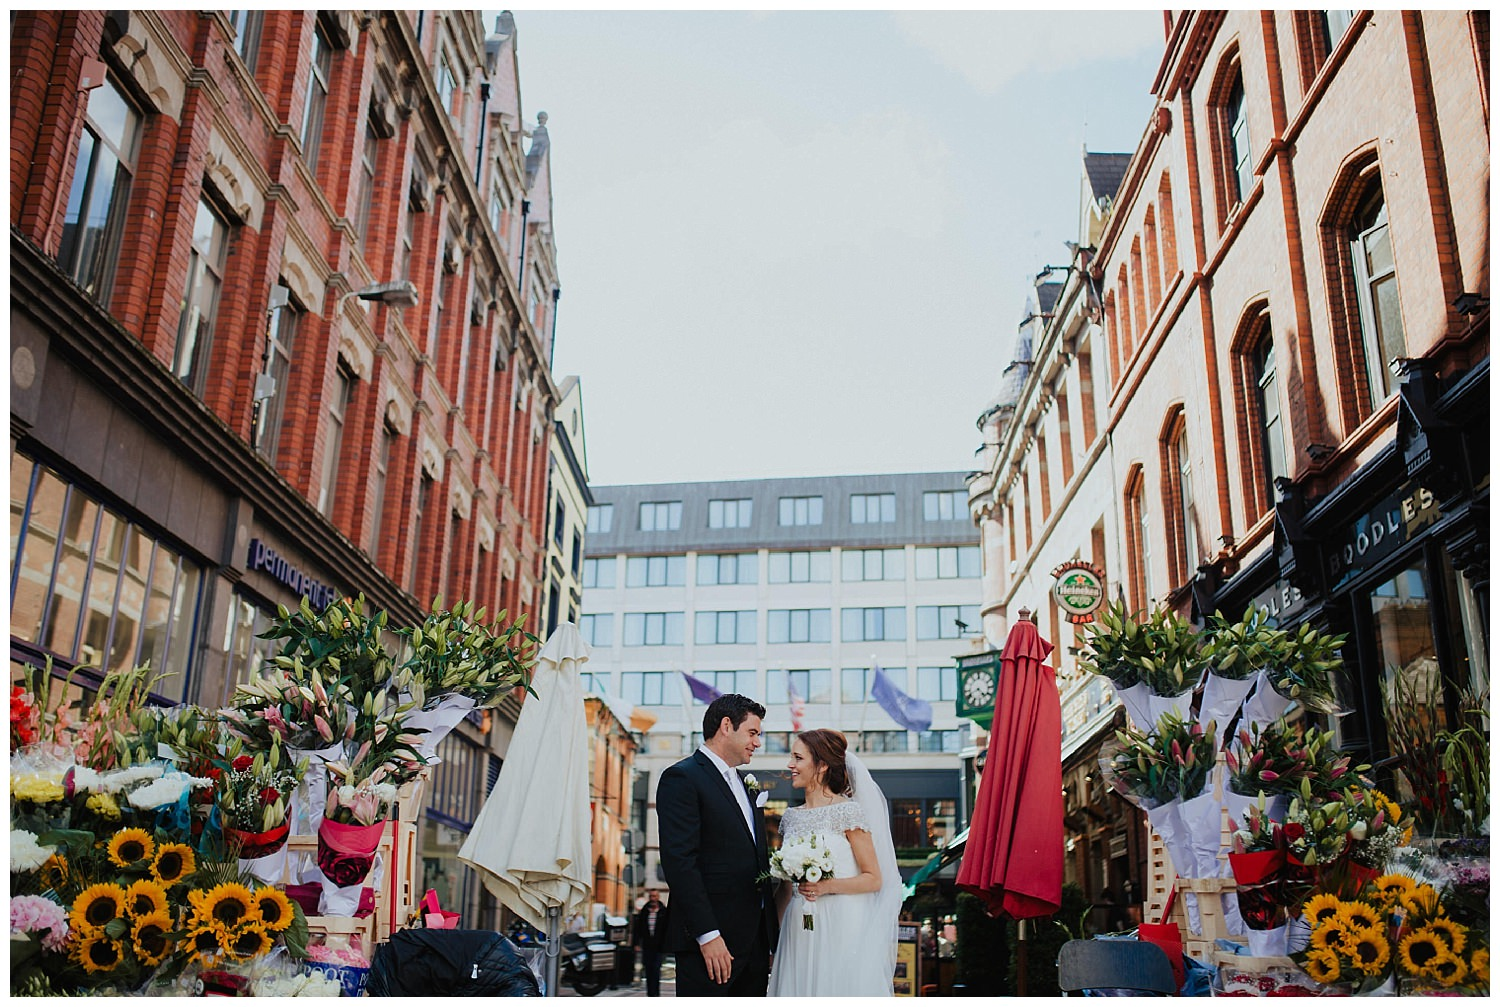 g+j_westbury_documentary_dublin_city_wedding_photographer35.jpg